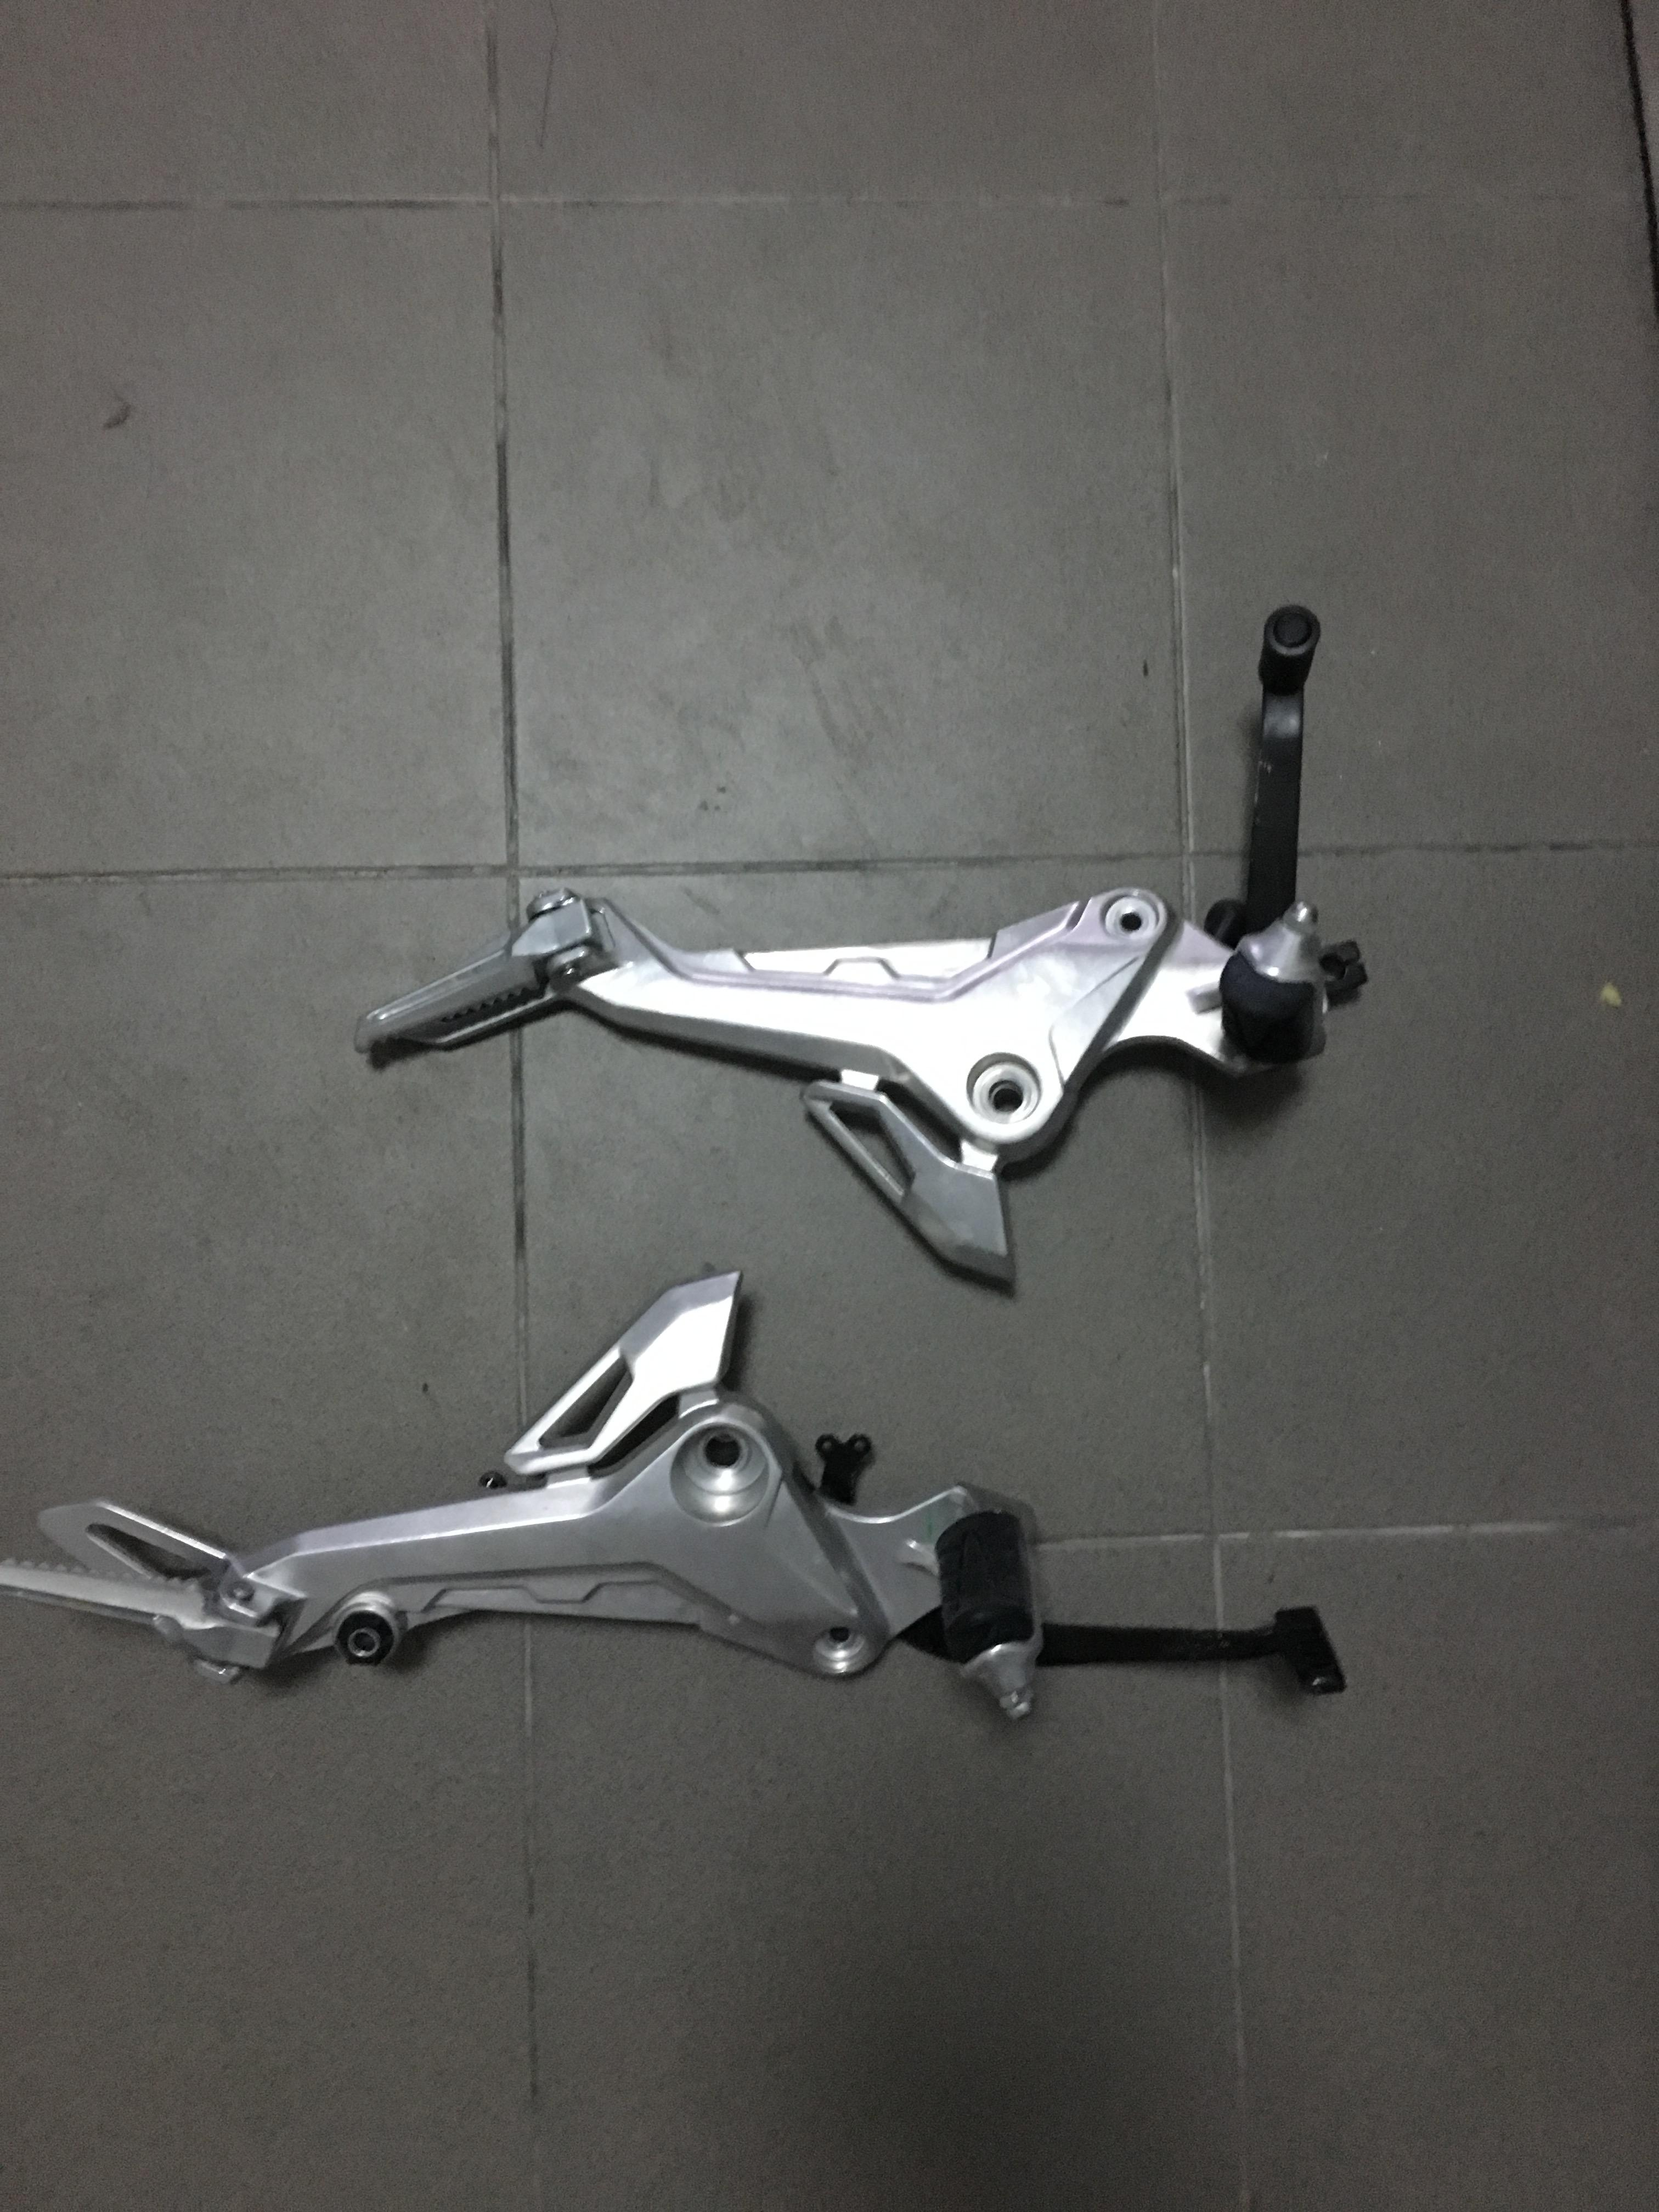 Question about parts and retail prices.-216c0bfb-3a9a-498e-8f98-75f37f182eea_1525280916536.jpeg